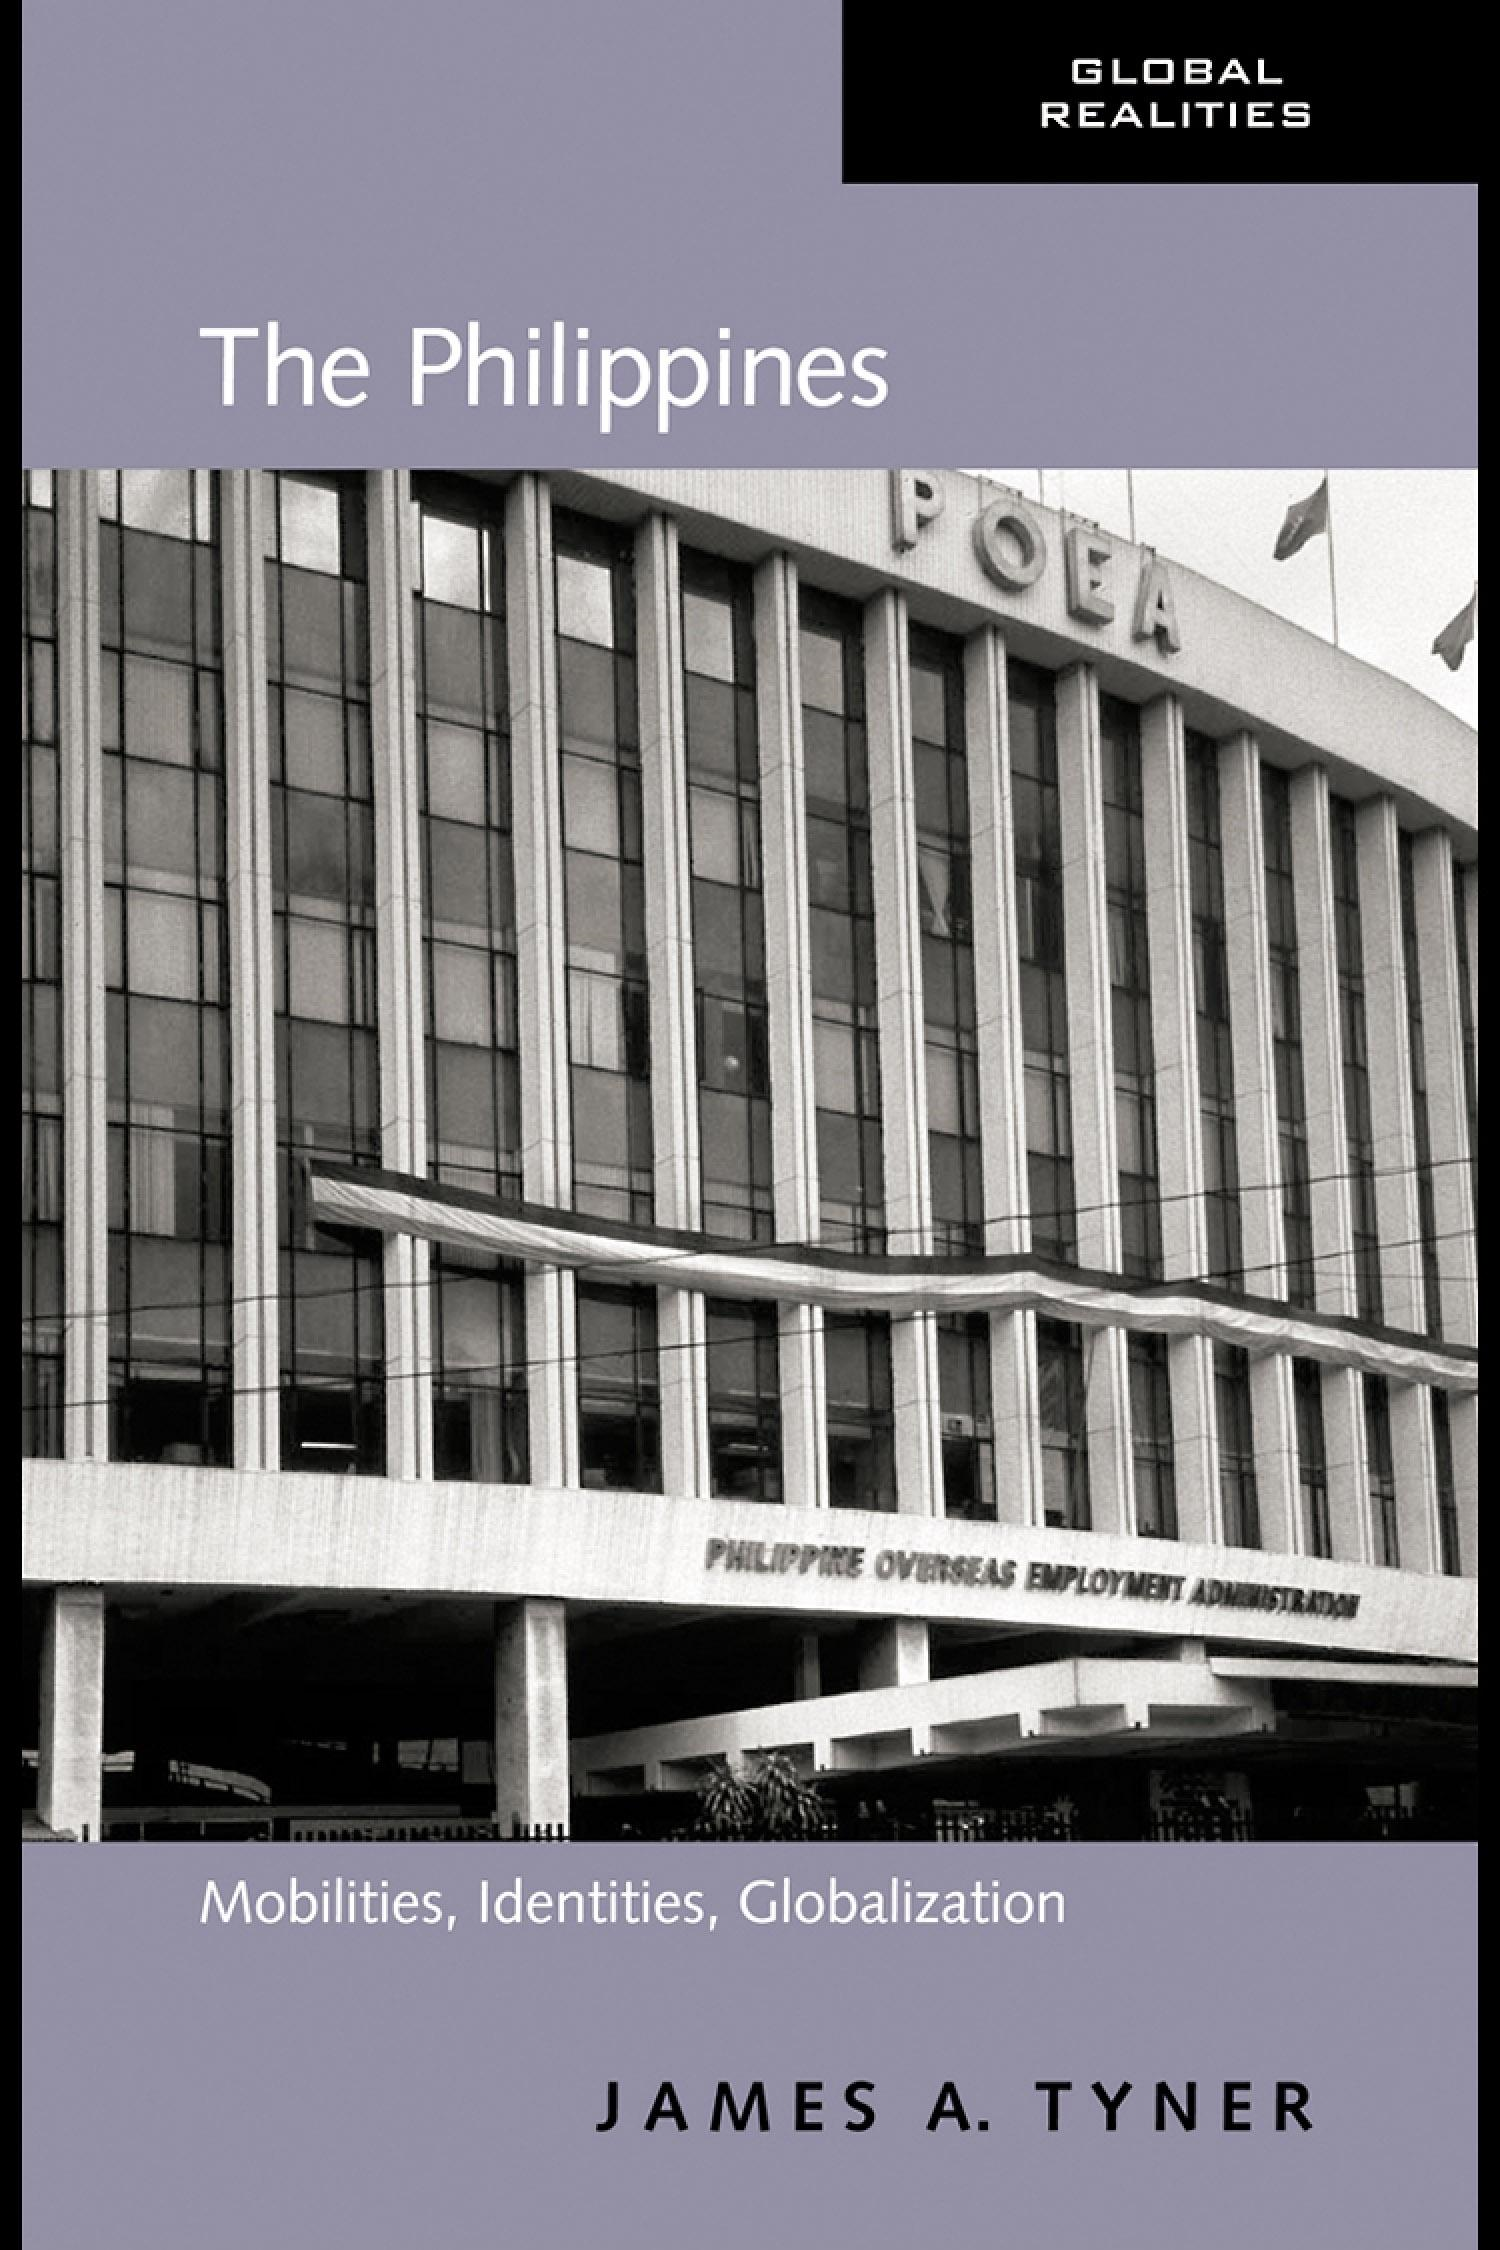 The Philippines: Mobilities, Identities, Globalization